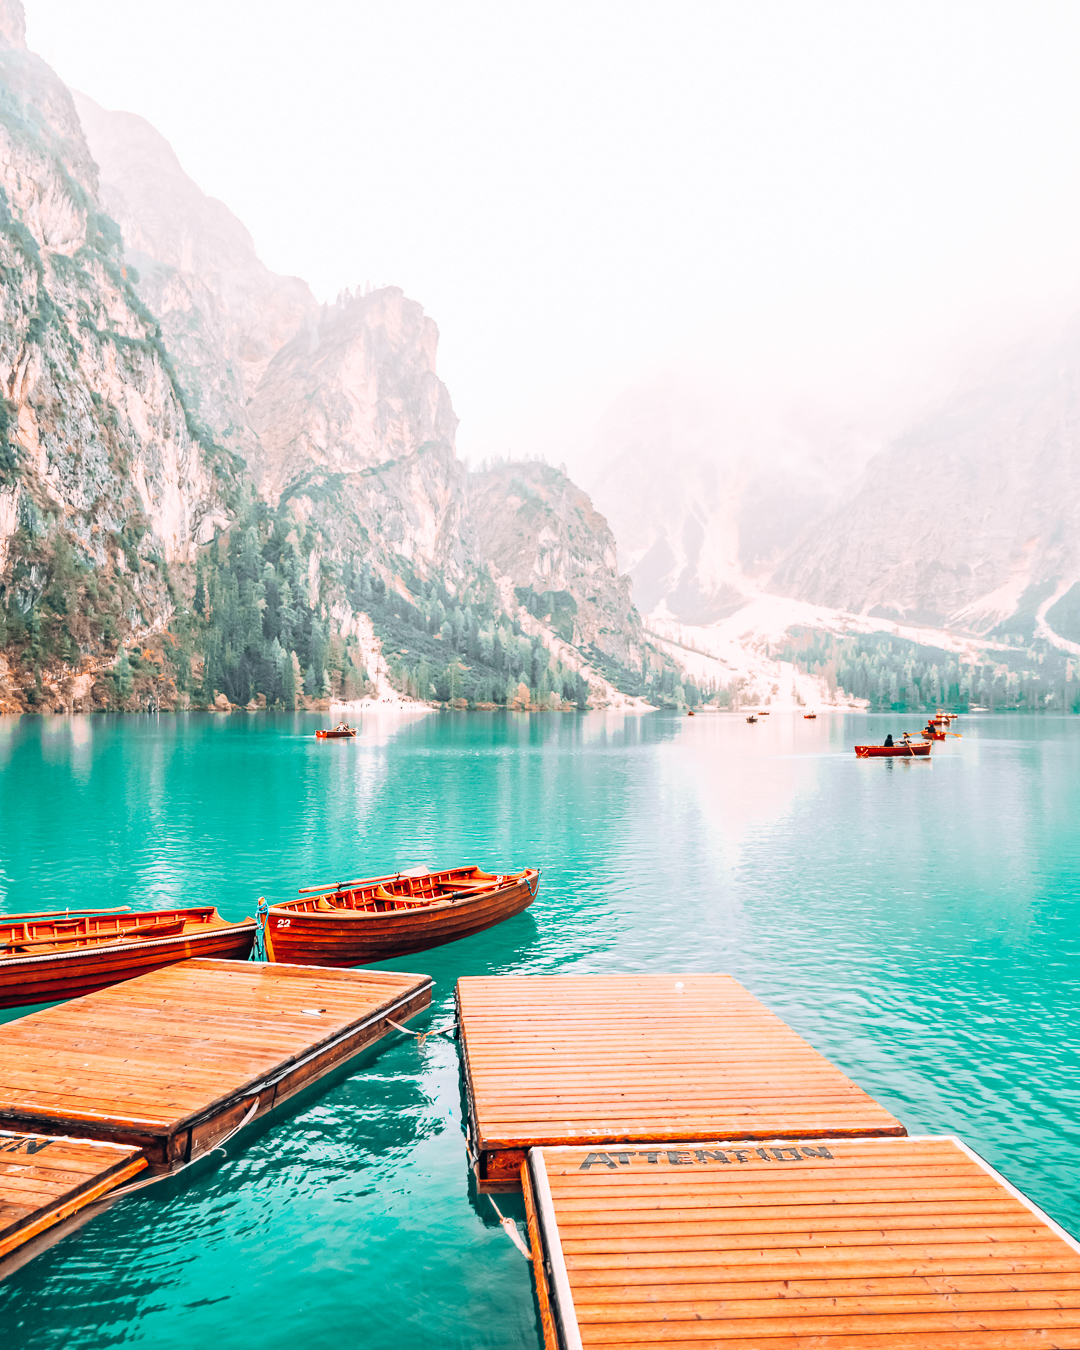 View of one of the lakes in the Dolomites